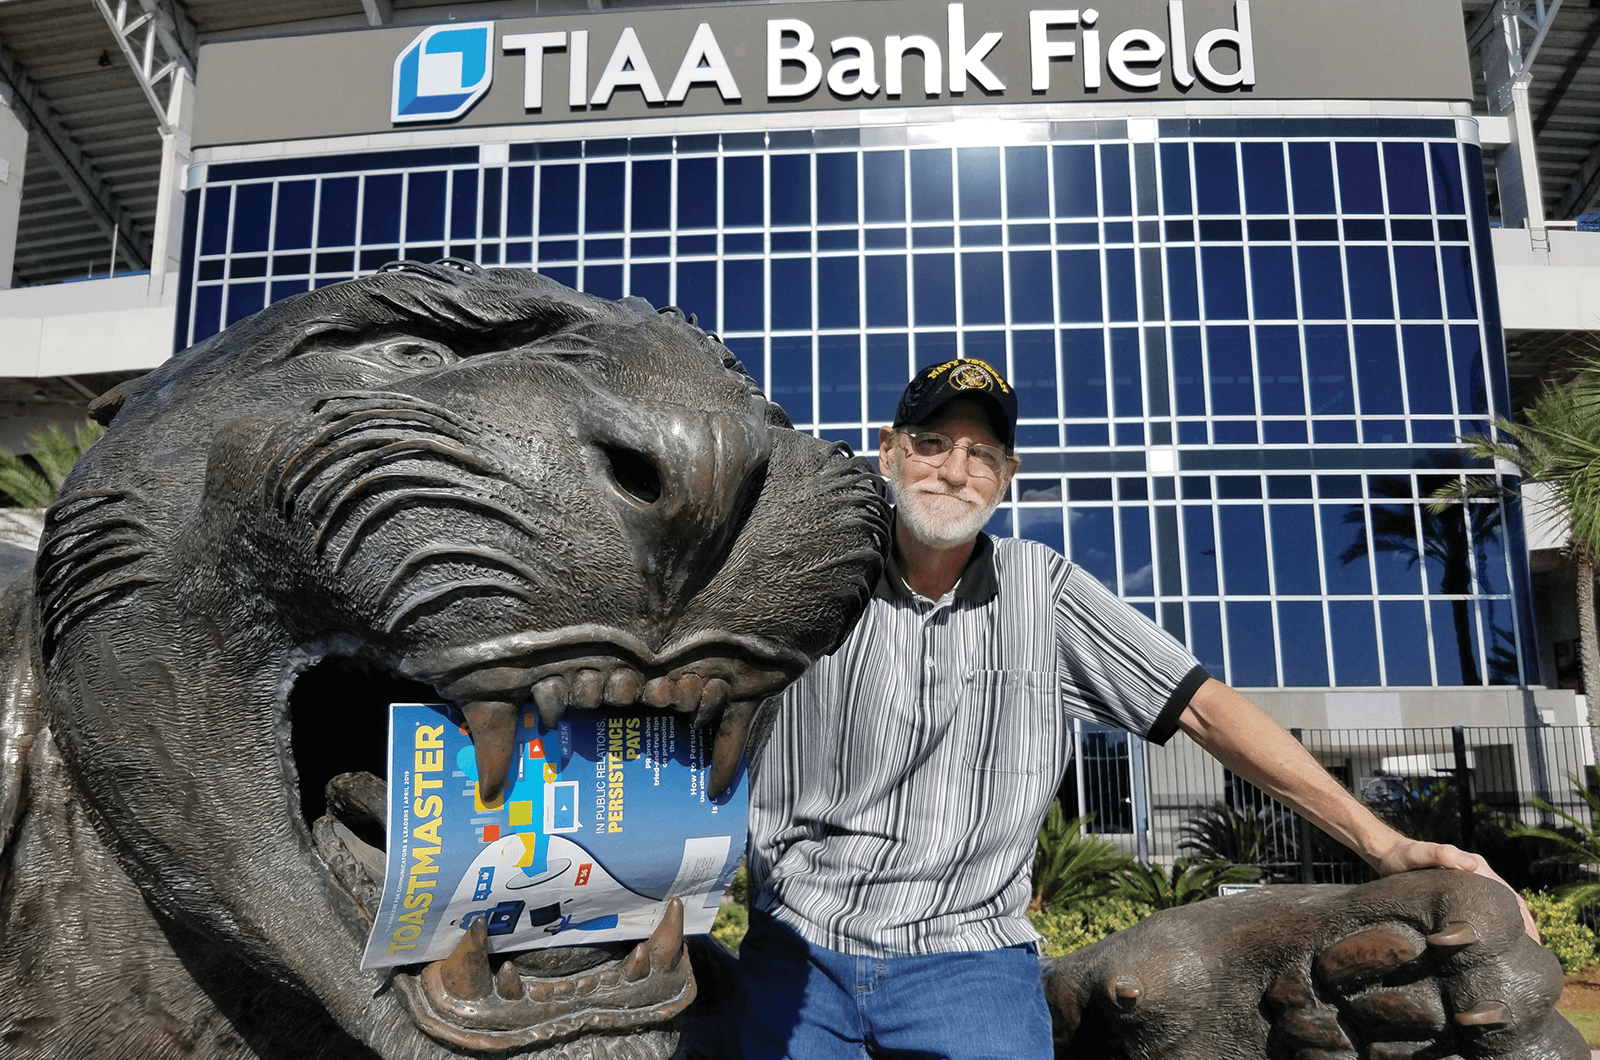 Bob Nowak of Jacksonville, Florida, poses outside of the home stadium of the National Football League's Jacksonville Jaguars.